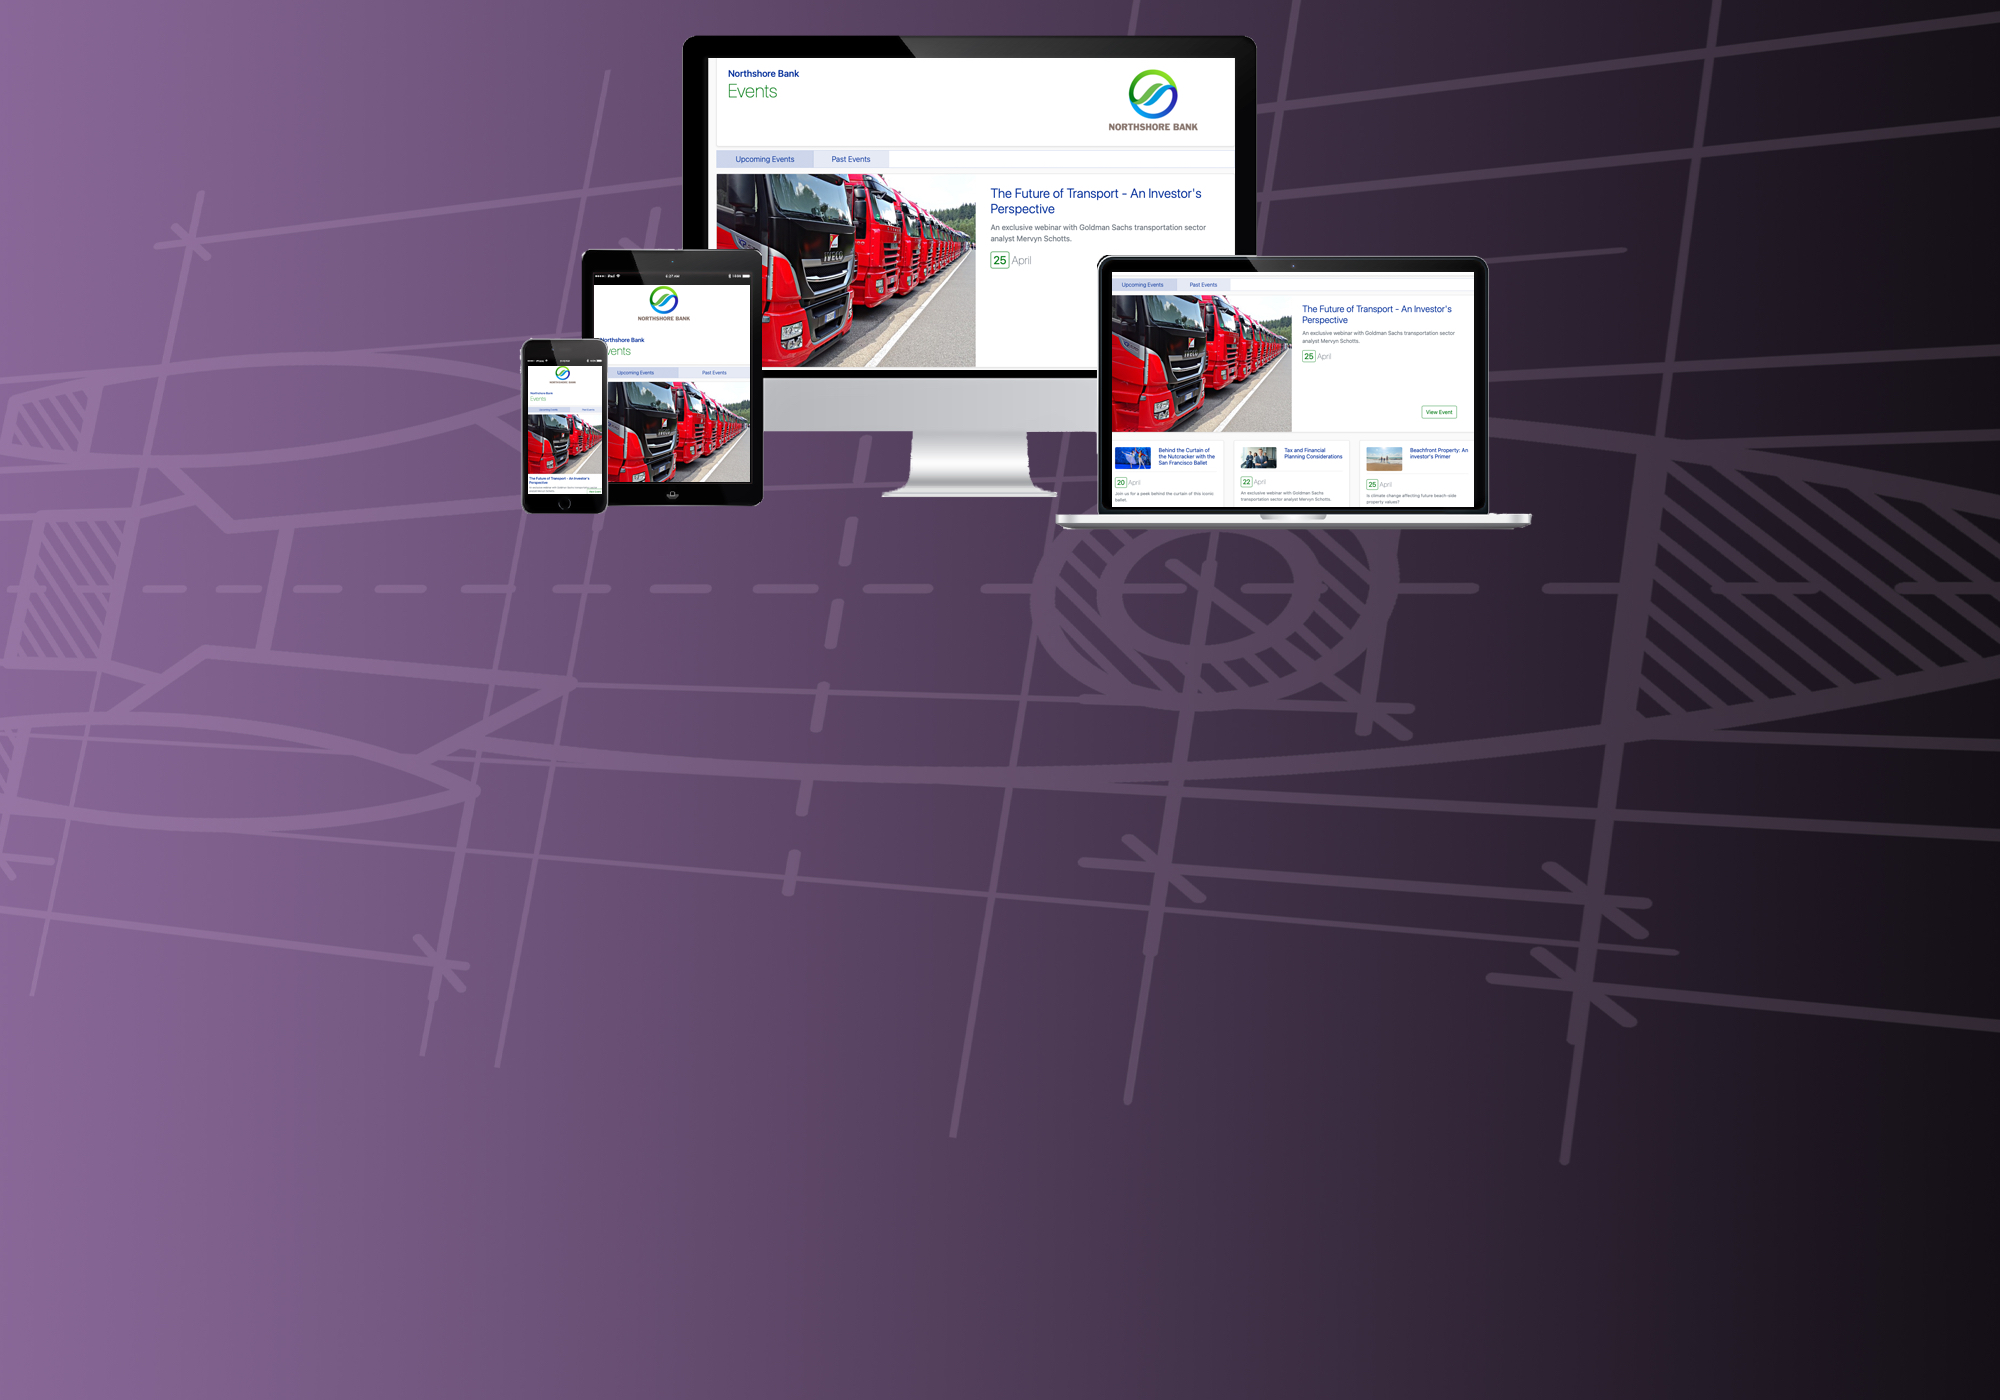 Mac, tablet and iphone displaying seatrobot event website